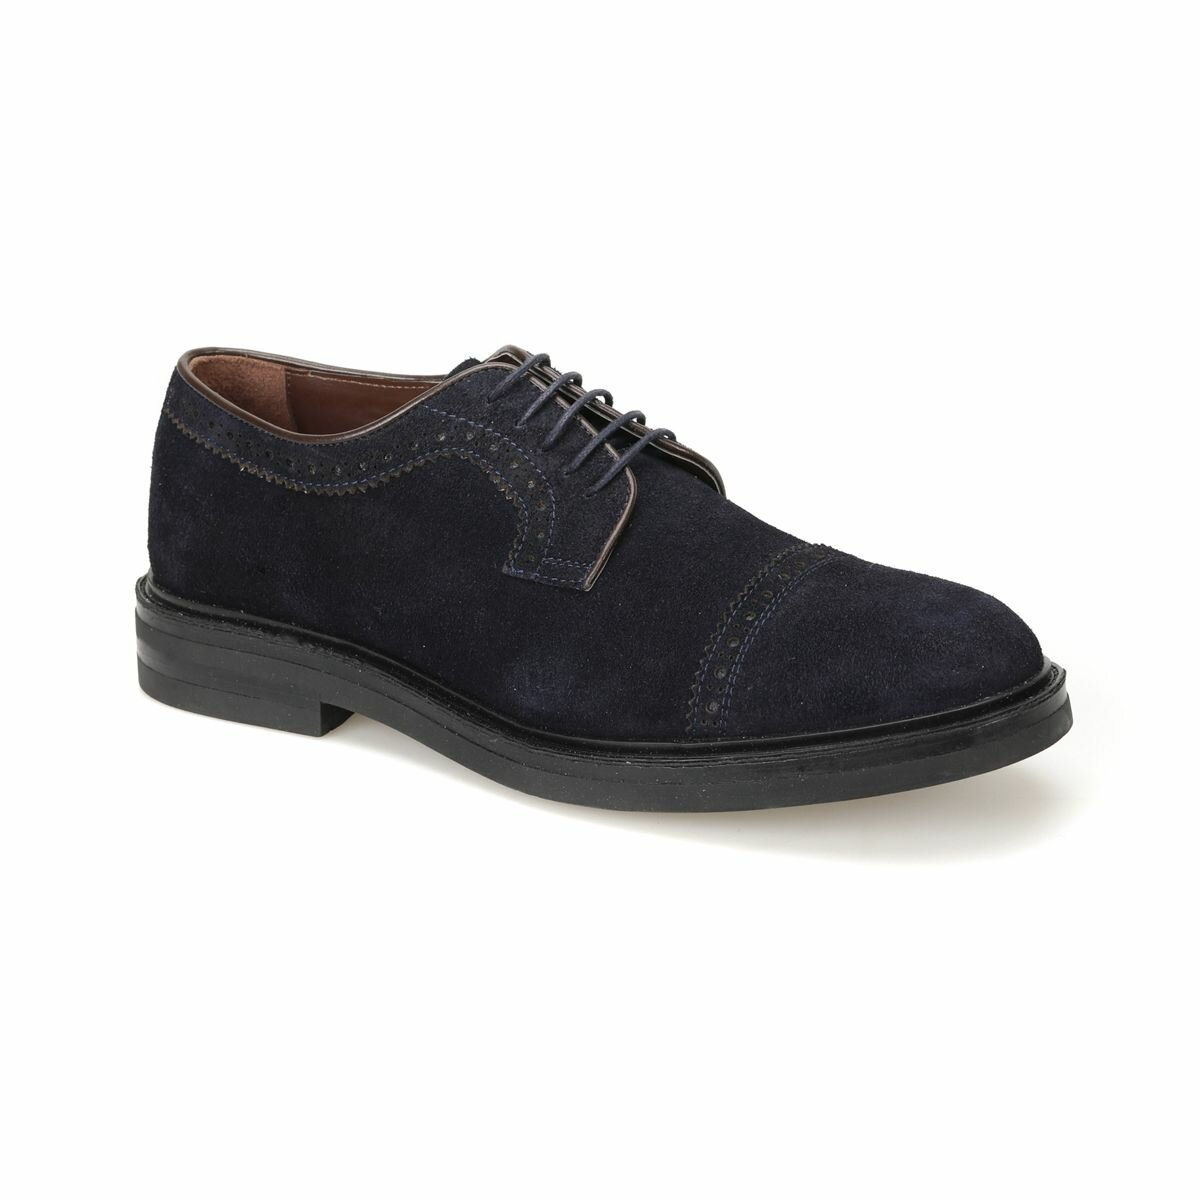 FLO 948-1 Navy Blue Men 'S Classic Shoes Garamond